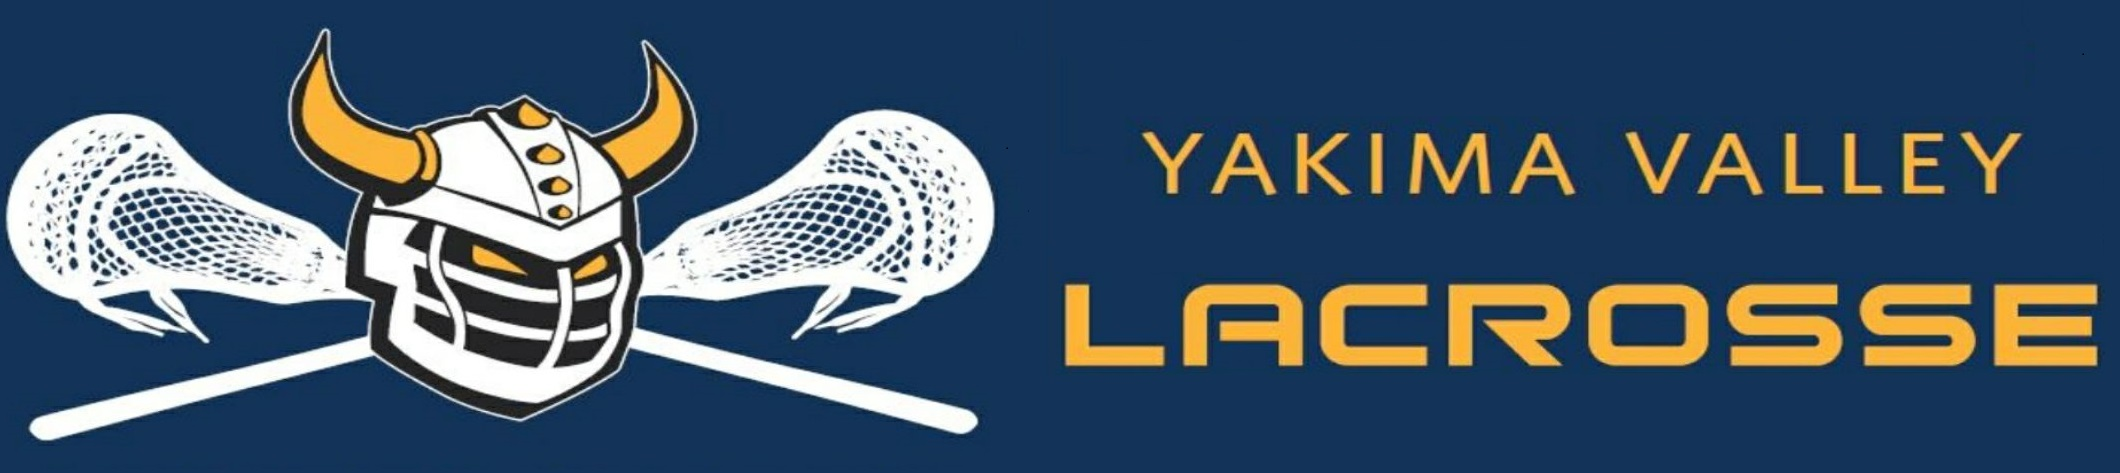 Central Valley Lacrosse, Lacrosse, Goal, Field